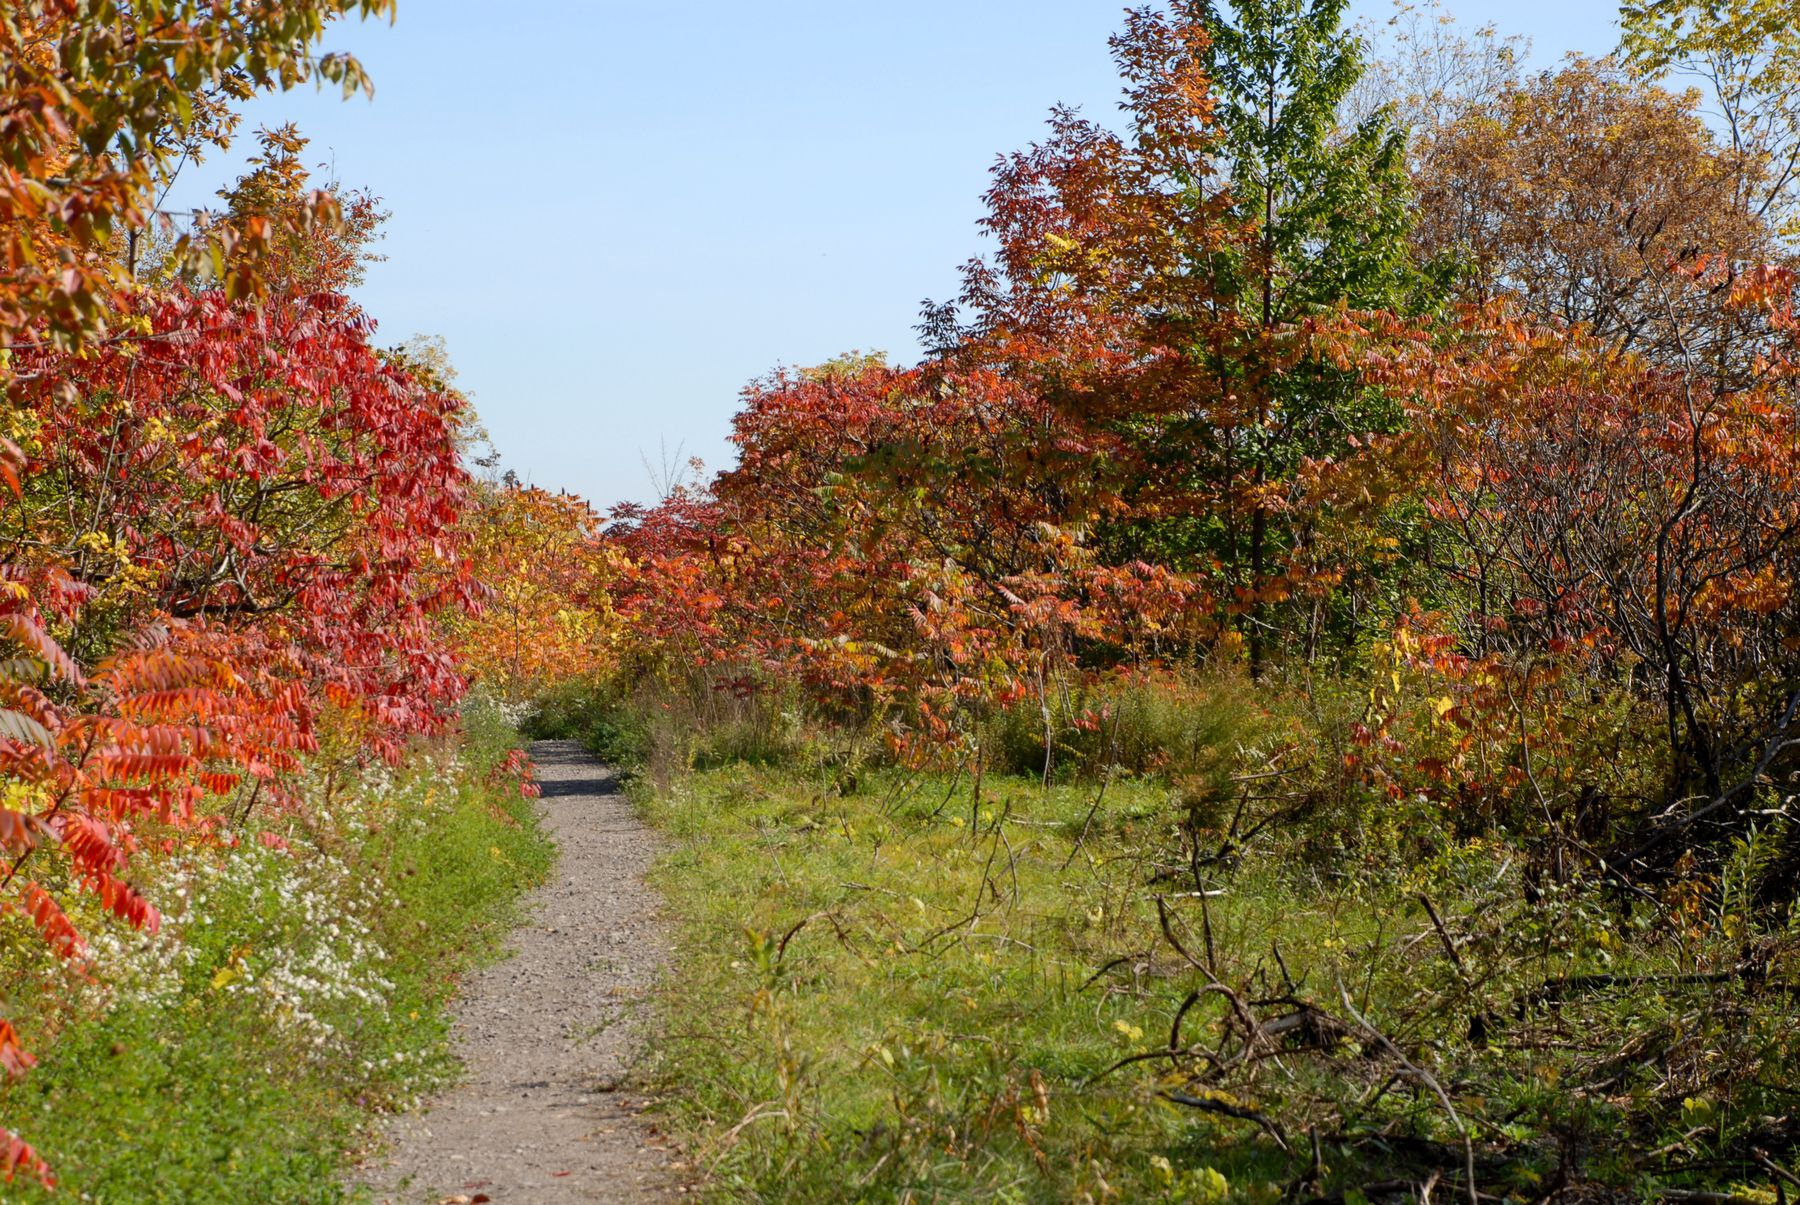 Part of Bruce Trail surrounded by fall foliage.